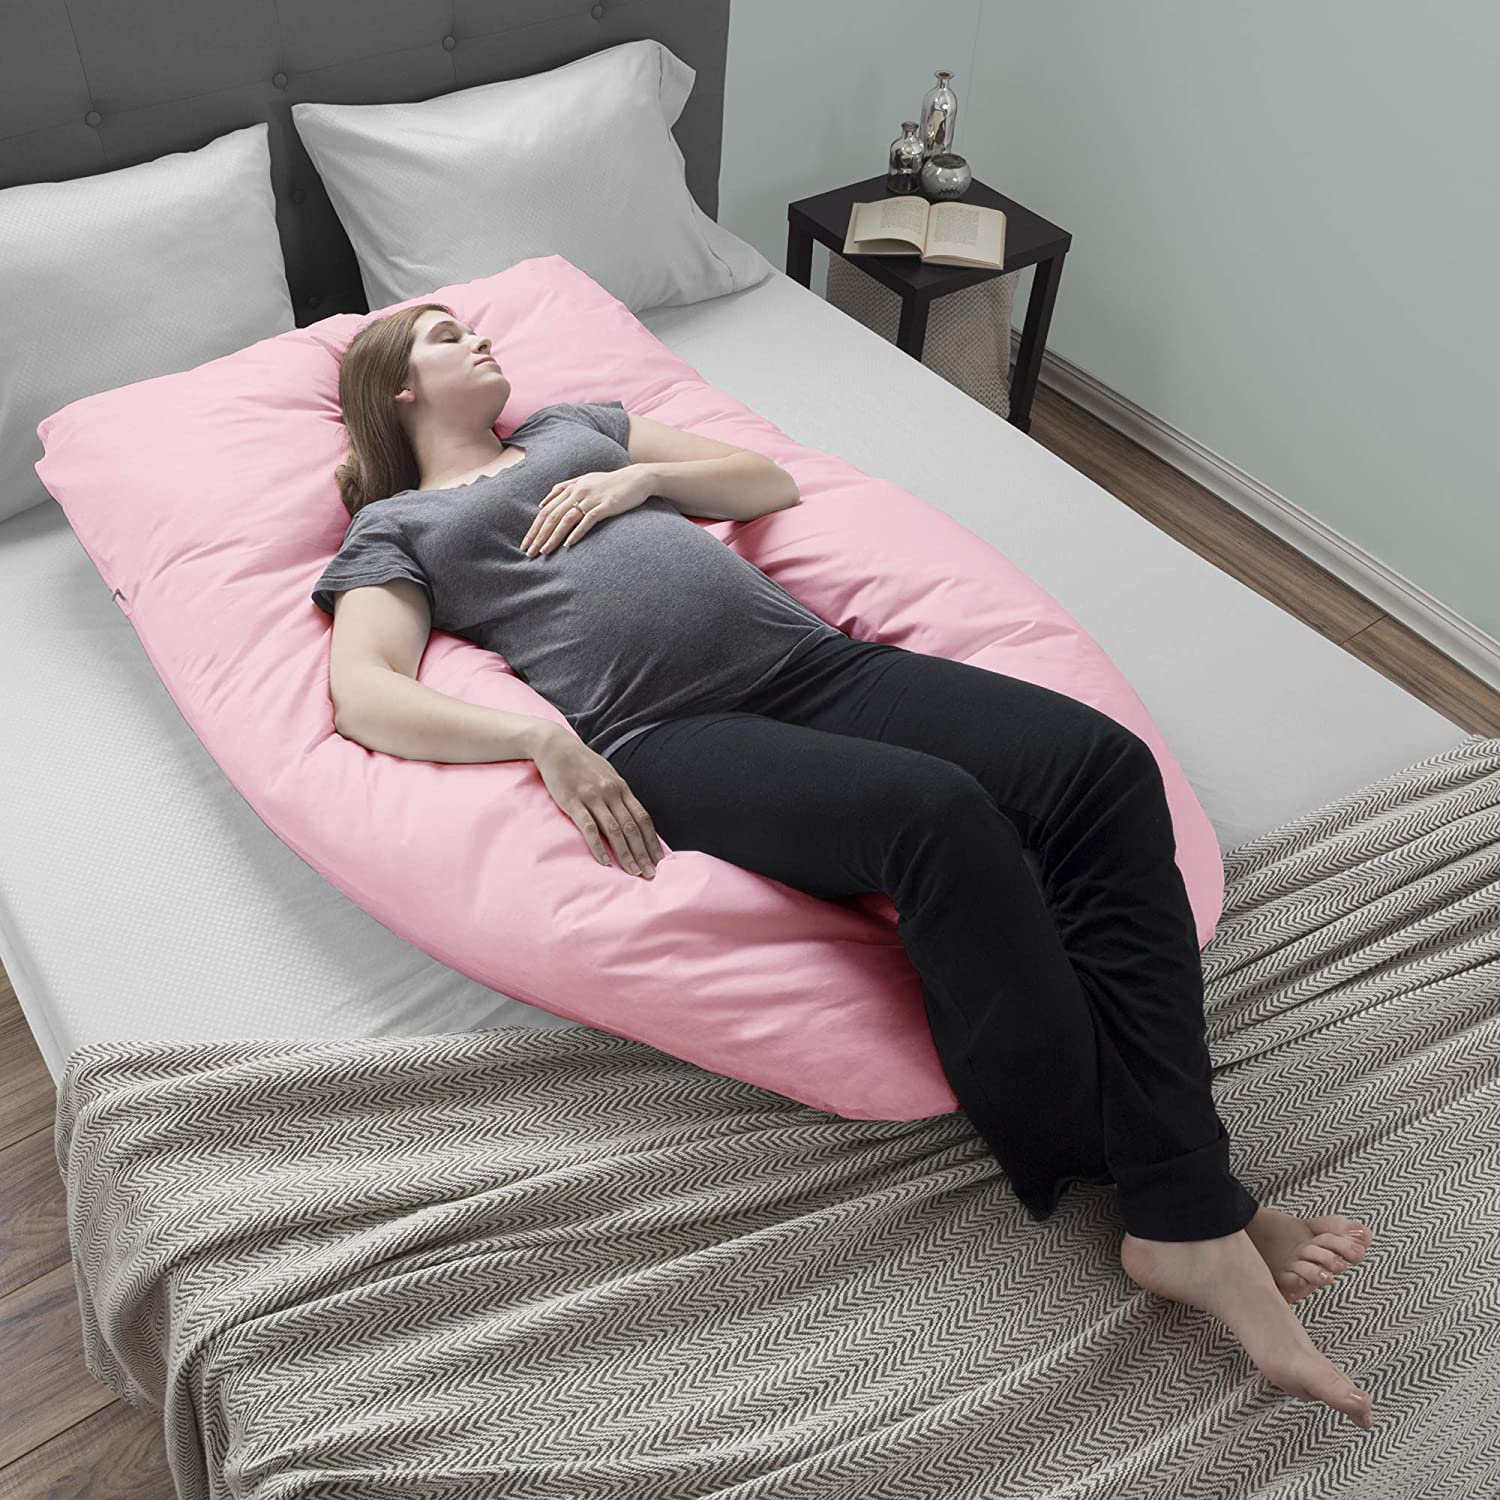 Pink Pregnancy Pillow Full Body Maternity Pillow with Removable Cover and Contoured U-Shape Design for Back//Body Support by Lavish Home Collection